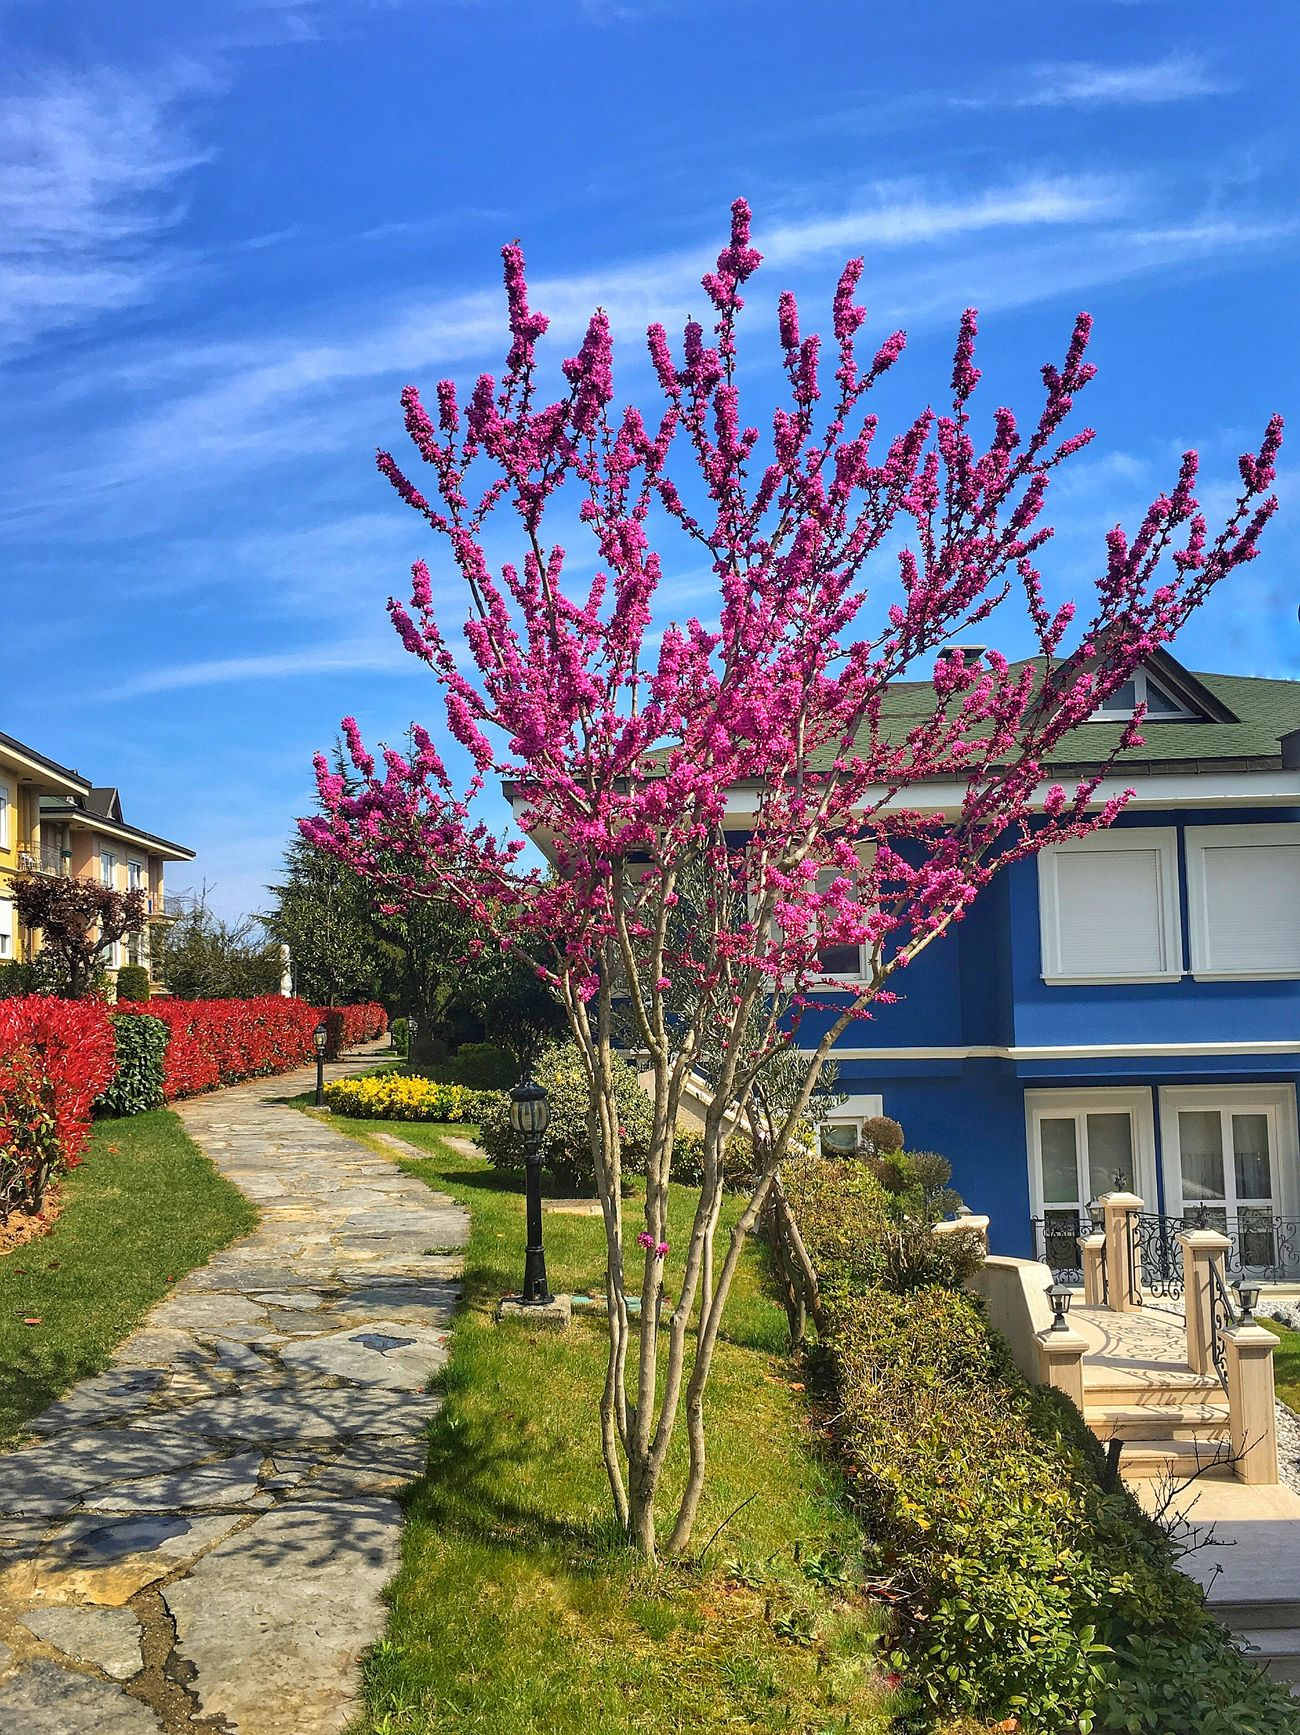 Erguvan Flower Growth Tree Sky Architecture Built Structure Building Exterior Nature Blossom City Outdoors Springtime Beauty In Nature No People Plant Pink Grass Fragility Day Freshness